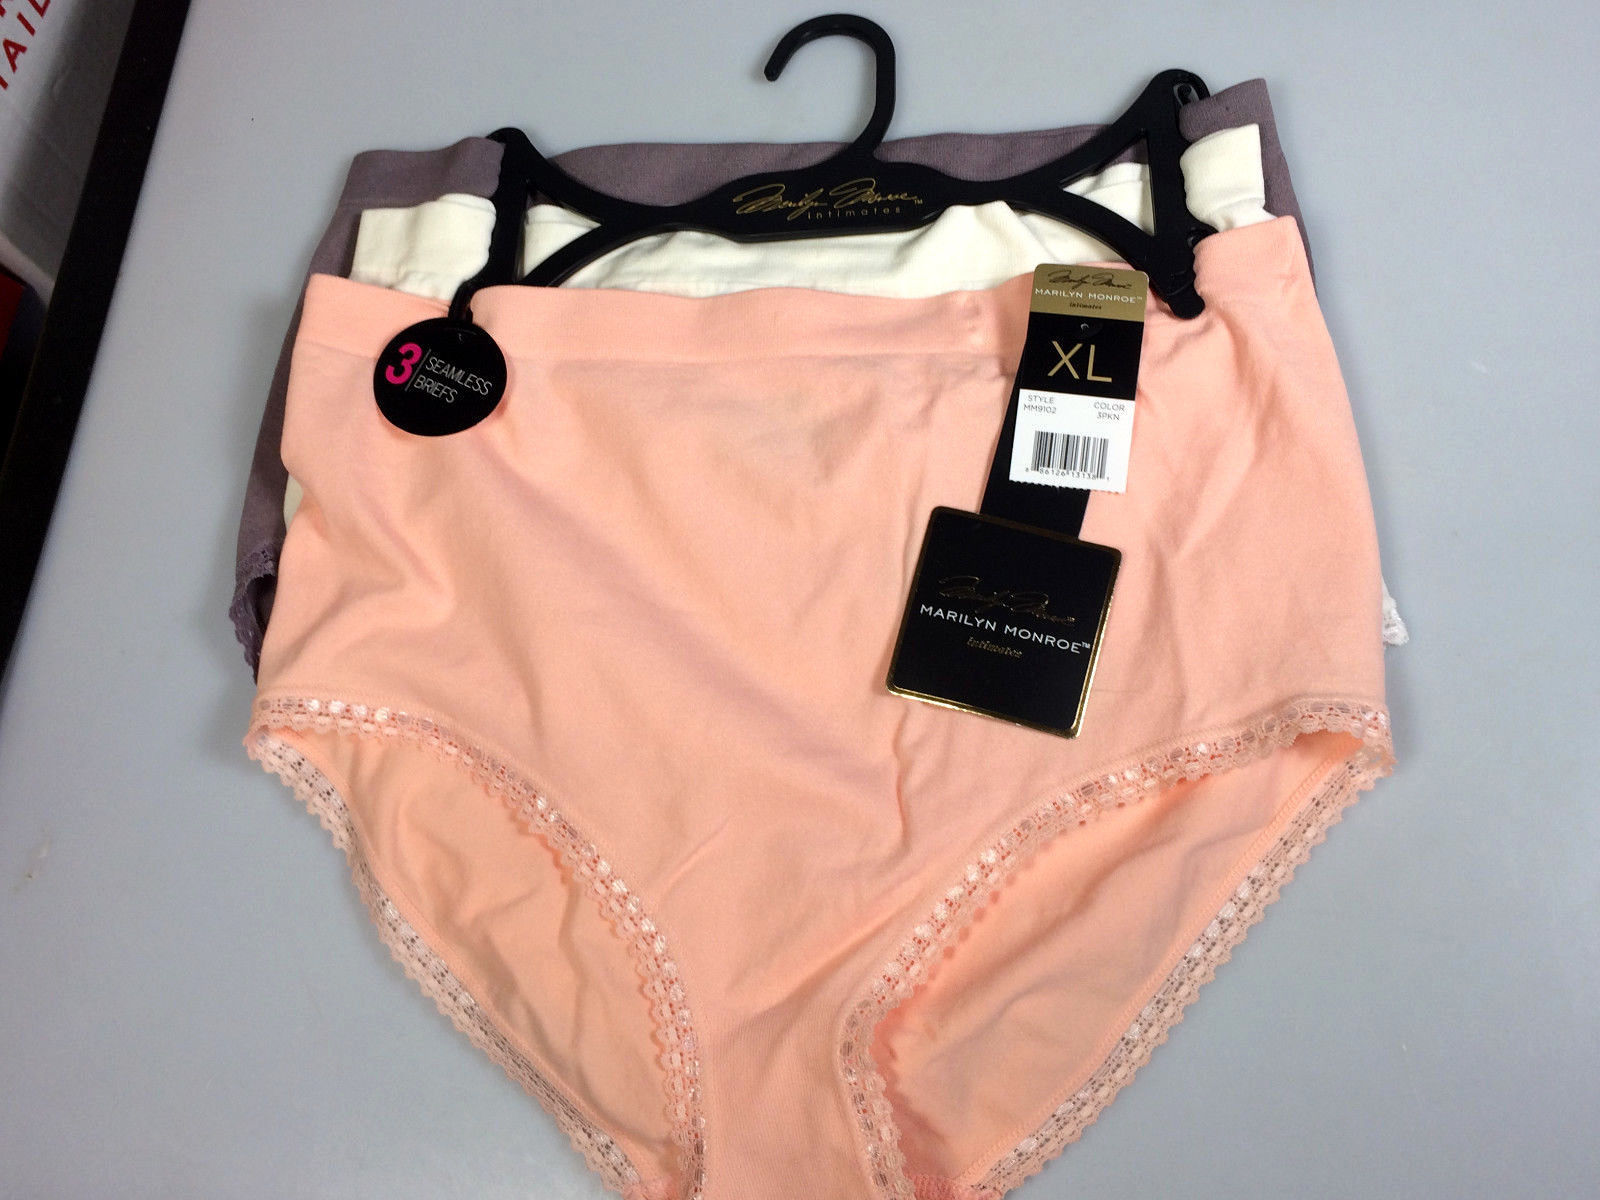 116636b0105 Womens Panties Xl, Marilyn Monroe Seamless and 50 similar items. S l1600